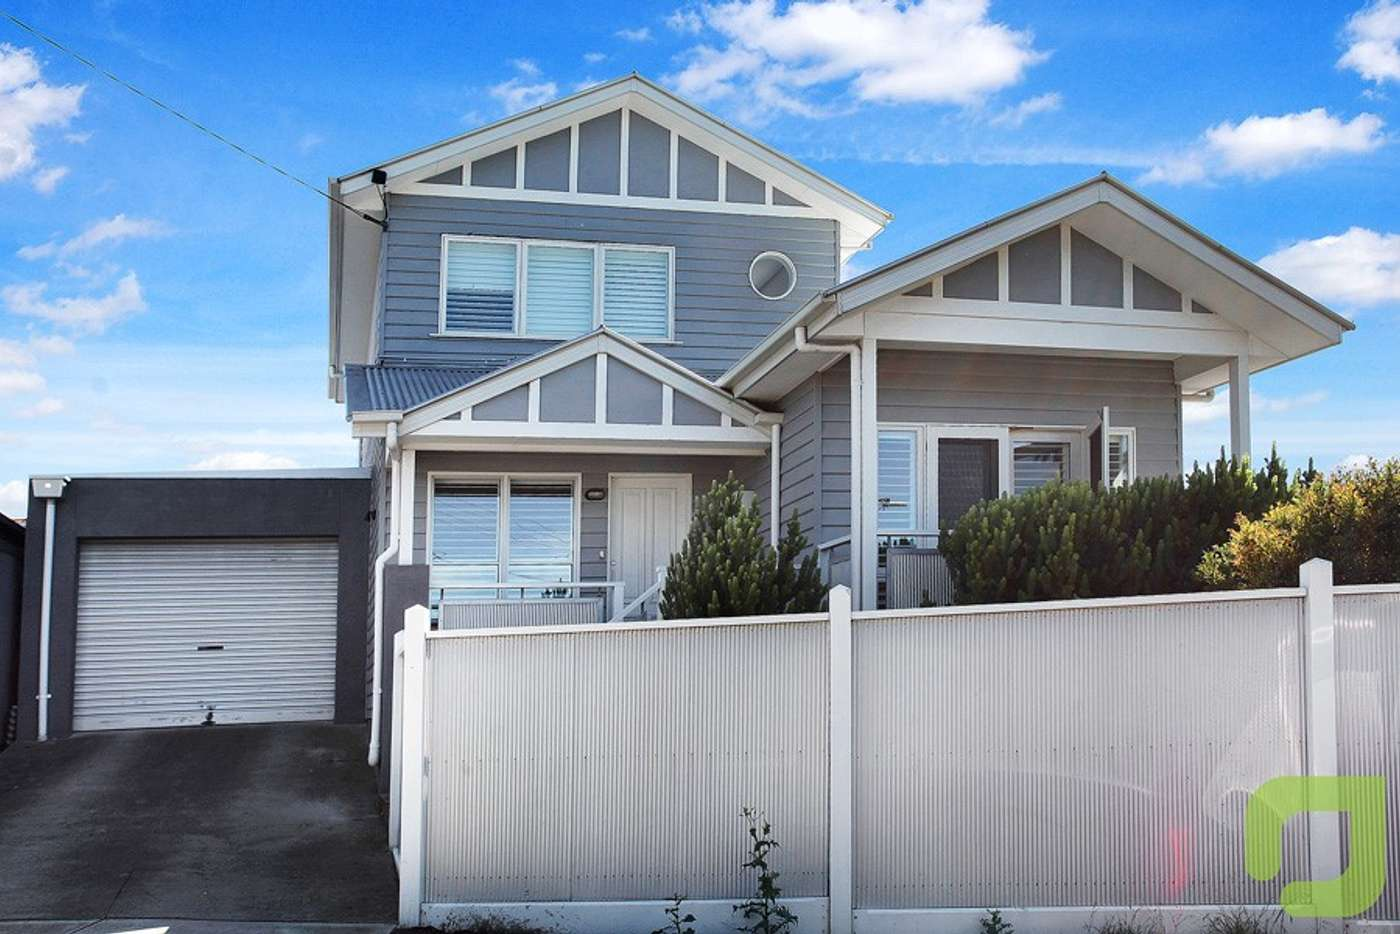 Main view of Homely townhouse listing, 1 Fyans Street, Yarraville VIC 3013